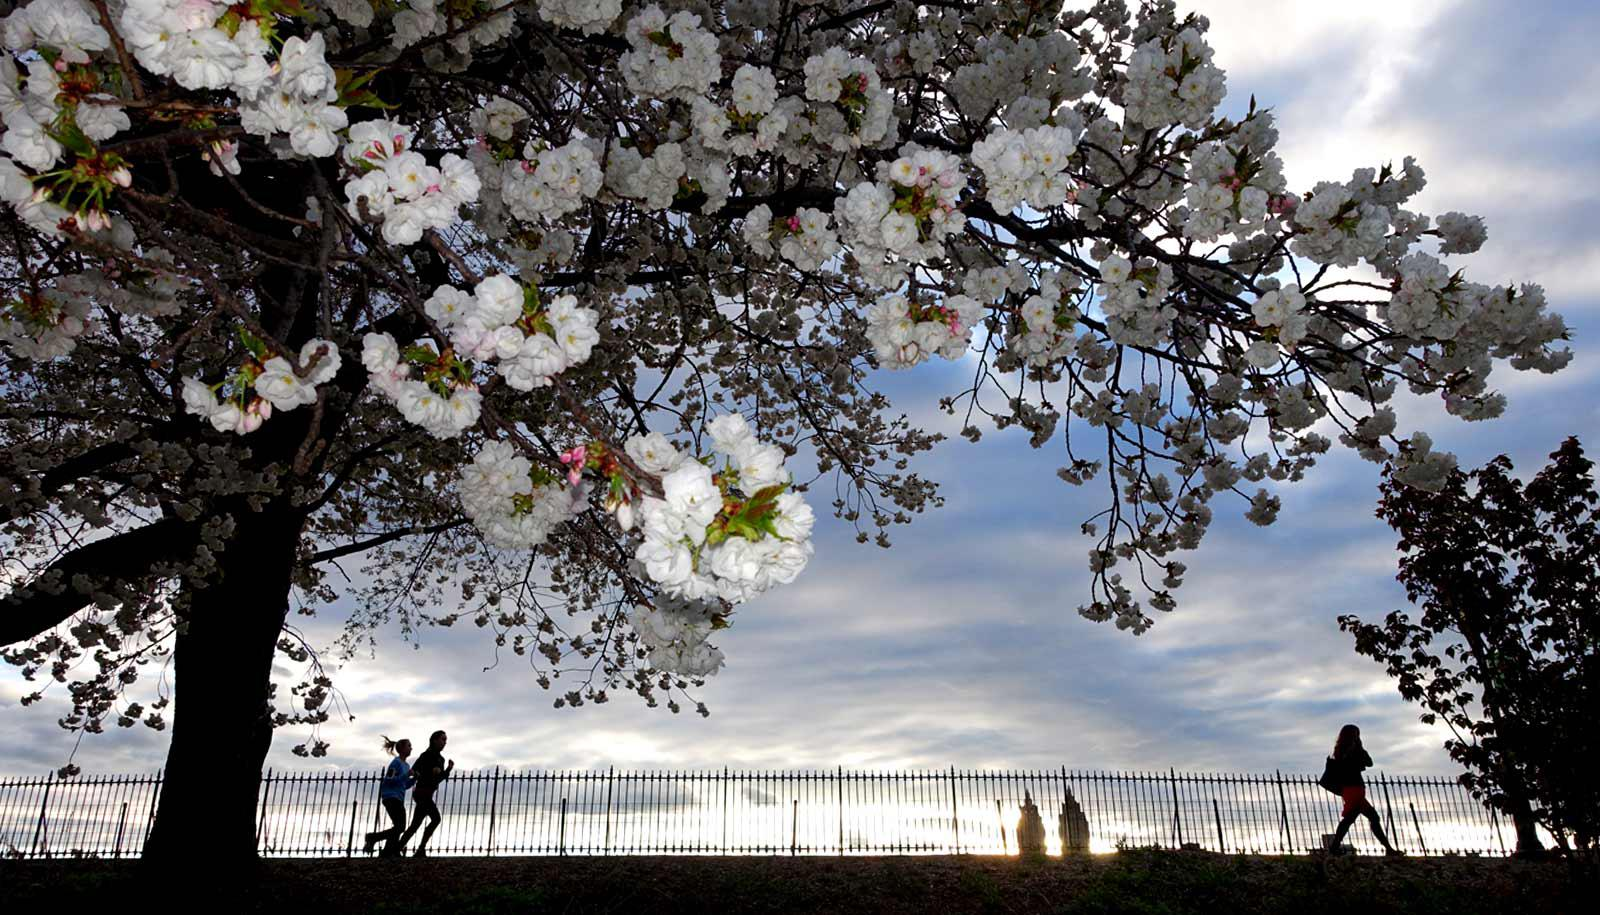 city trees bloom in foreground; joggers on city path in background